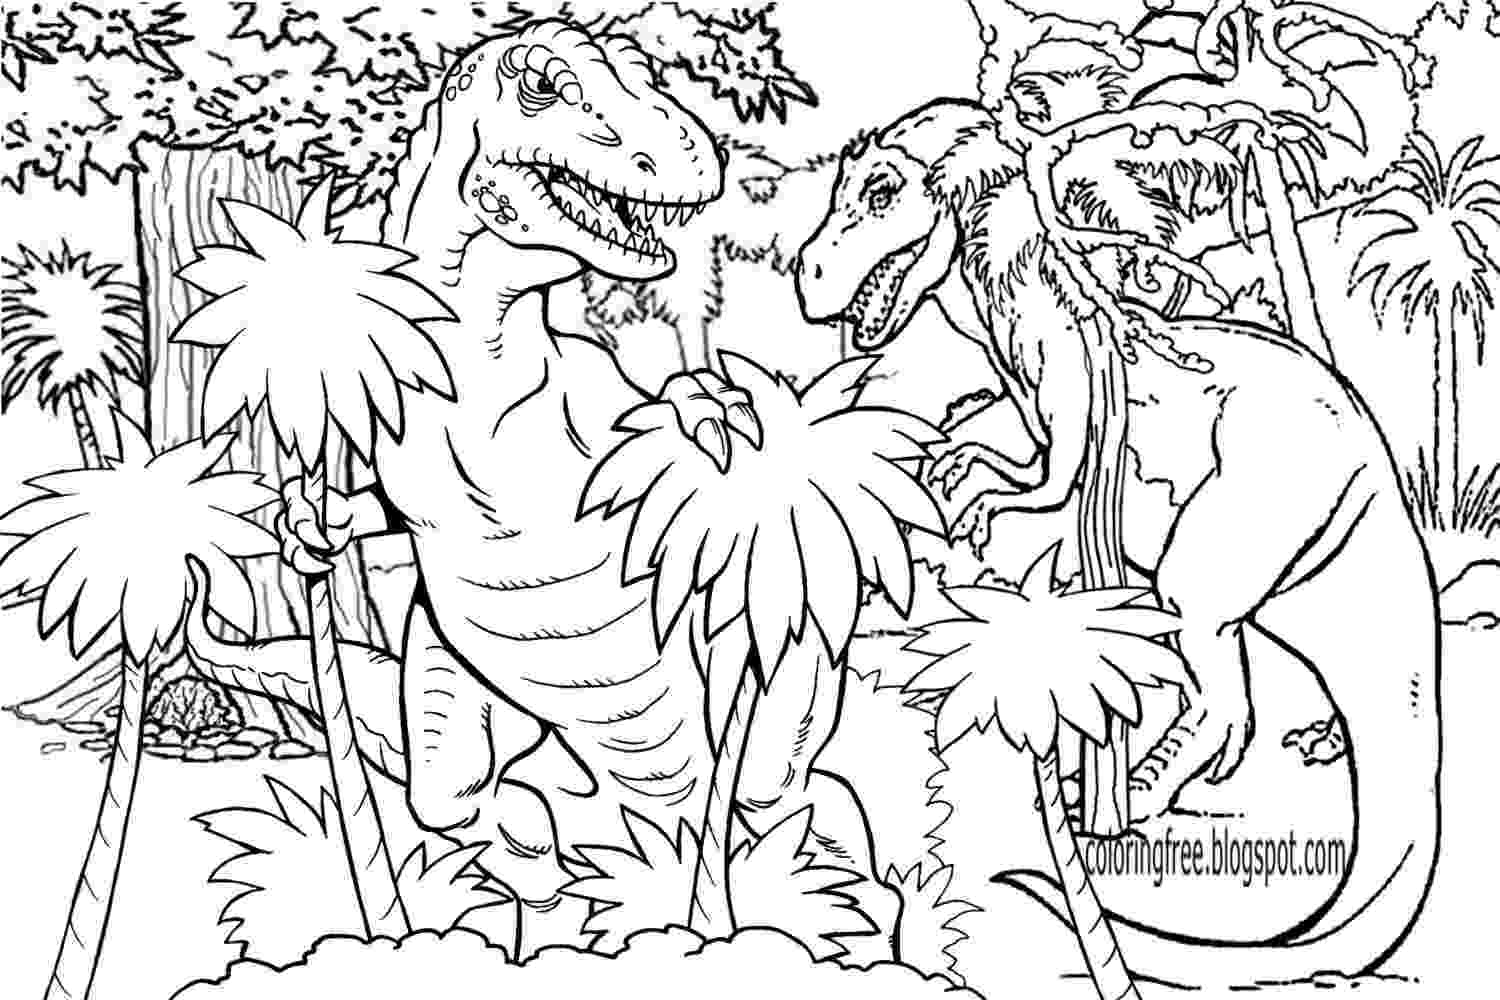 colouring pages dinosaurs printable free coloring pages printable pictures to color kids colouring pages dinosaurs printable